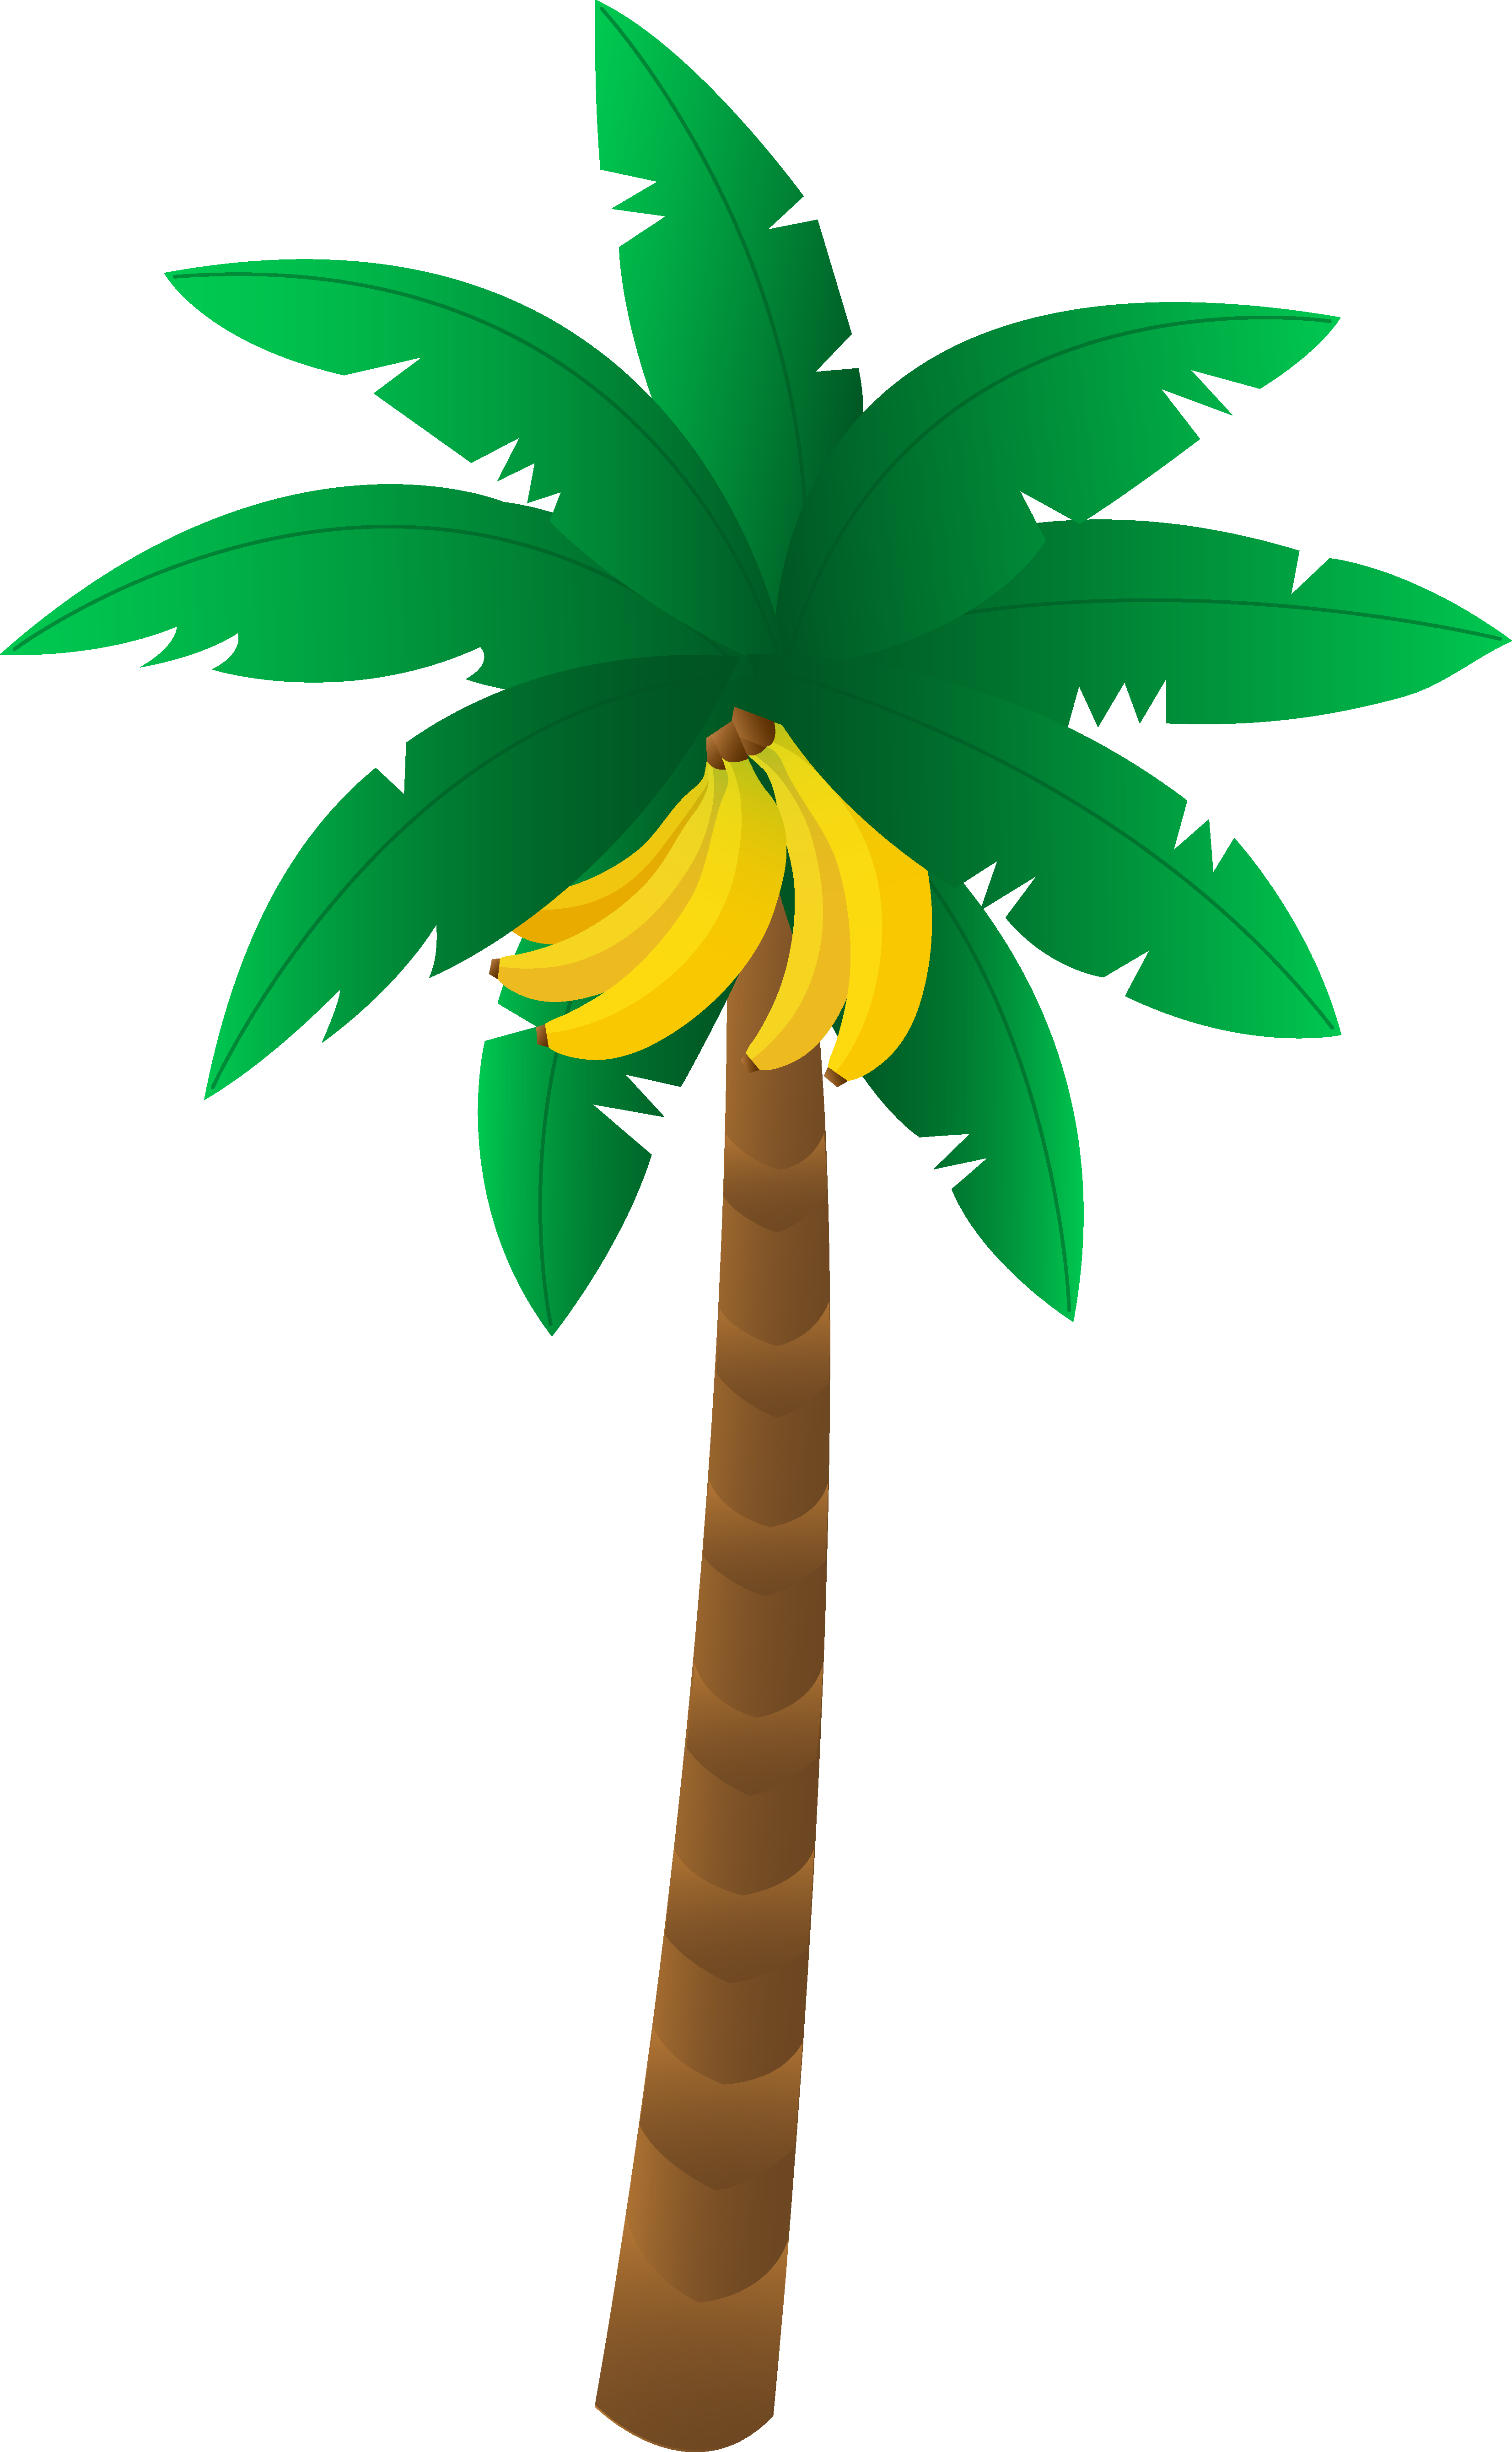 banana tree drawing png - photo #1